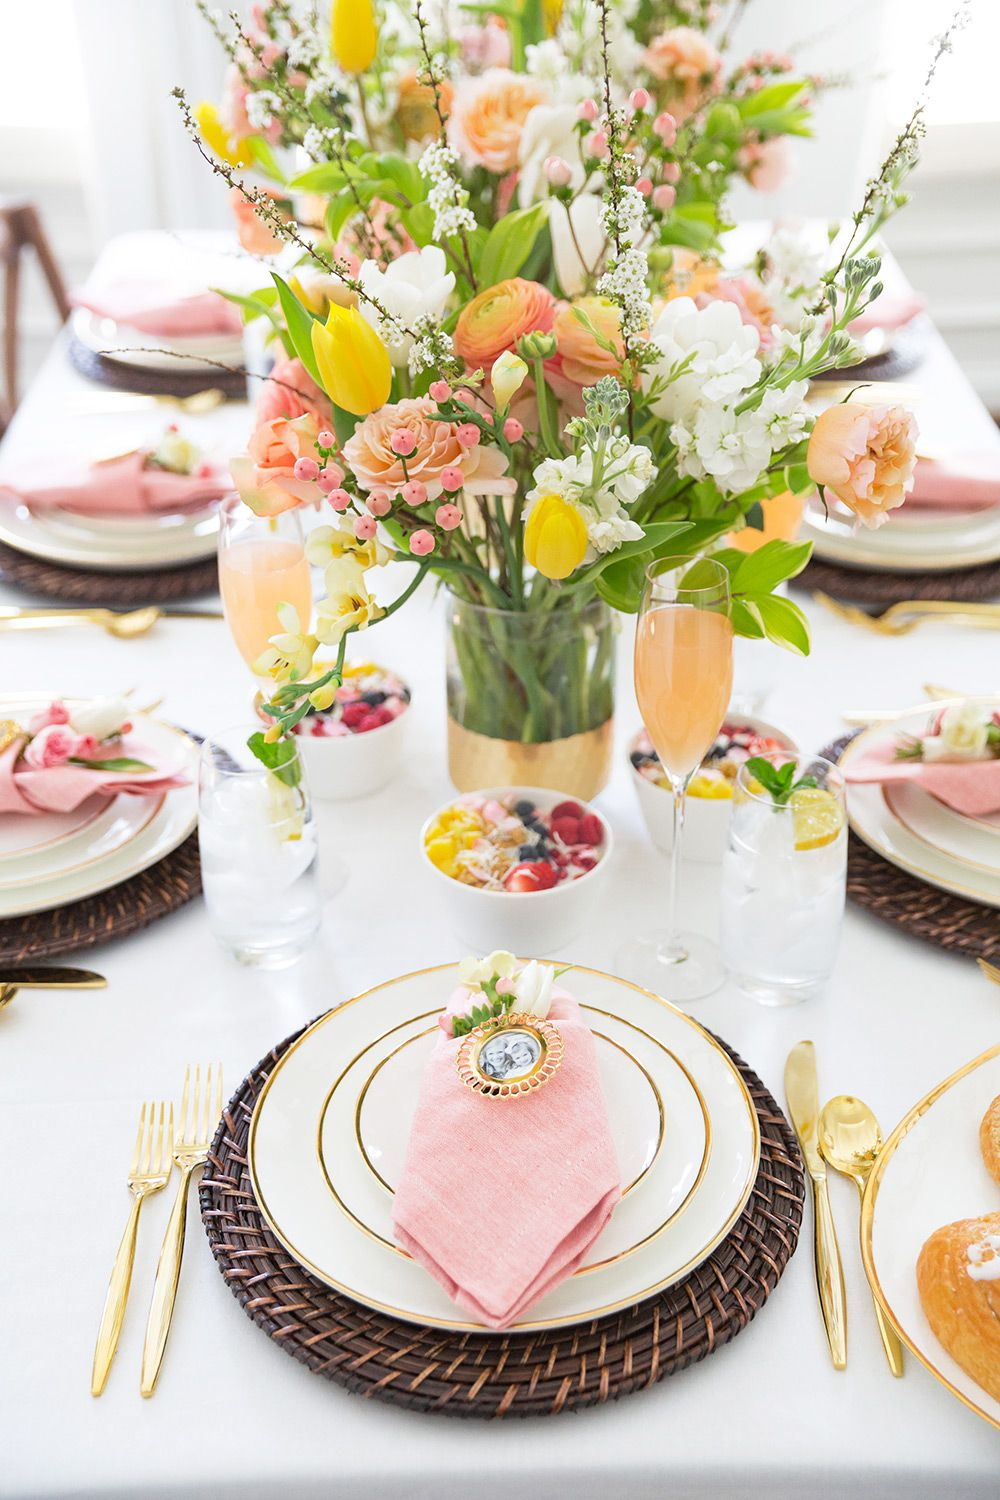 How To Set The Table For A Mother S Day Brunch Brunch Decor